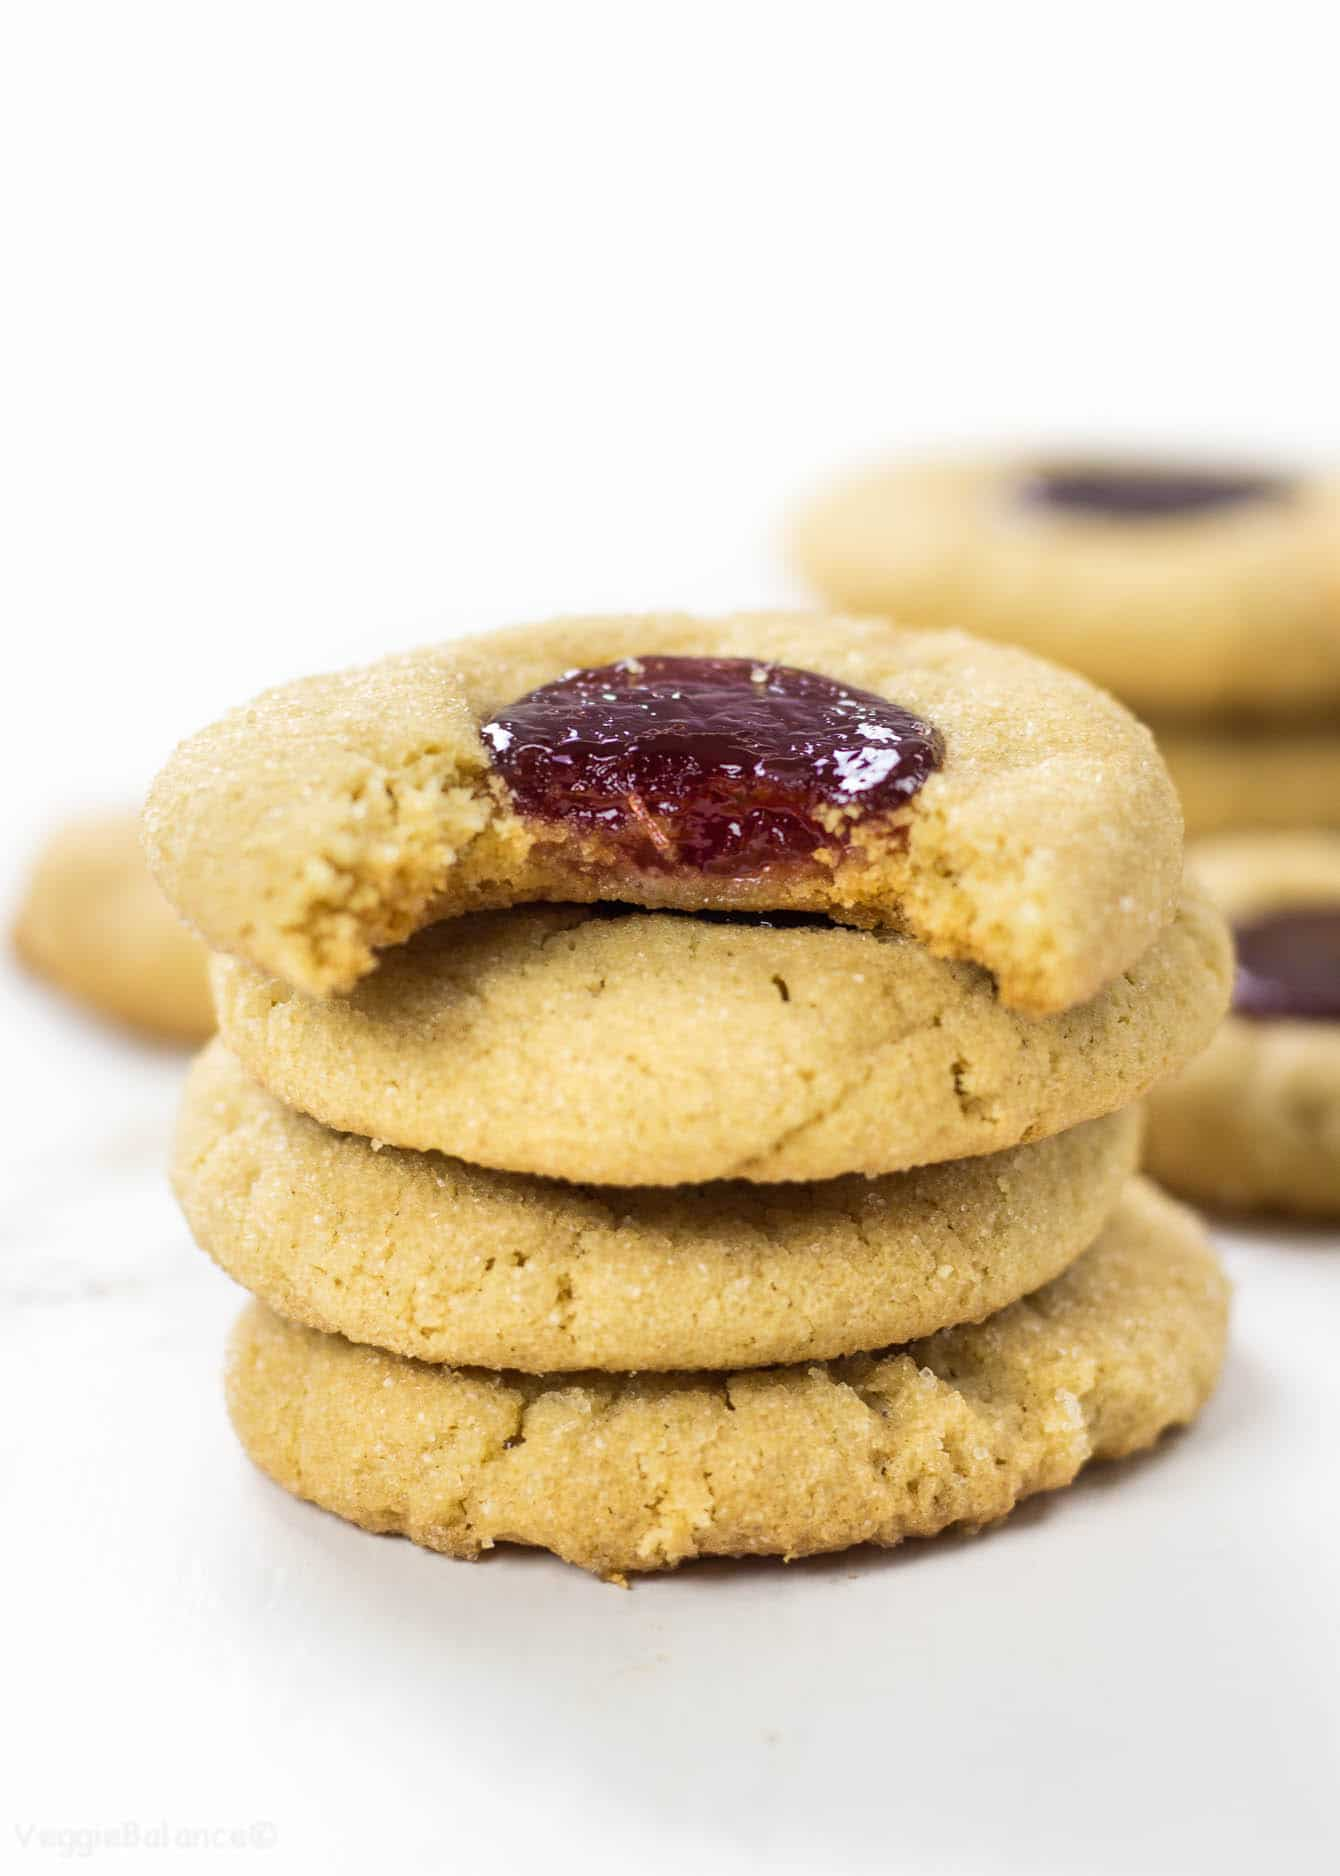 Peanut Butter Jelly Thumbprint Cookies - Veggiebalance.com